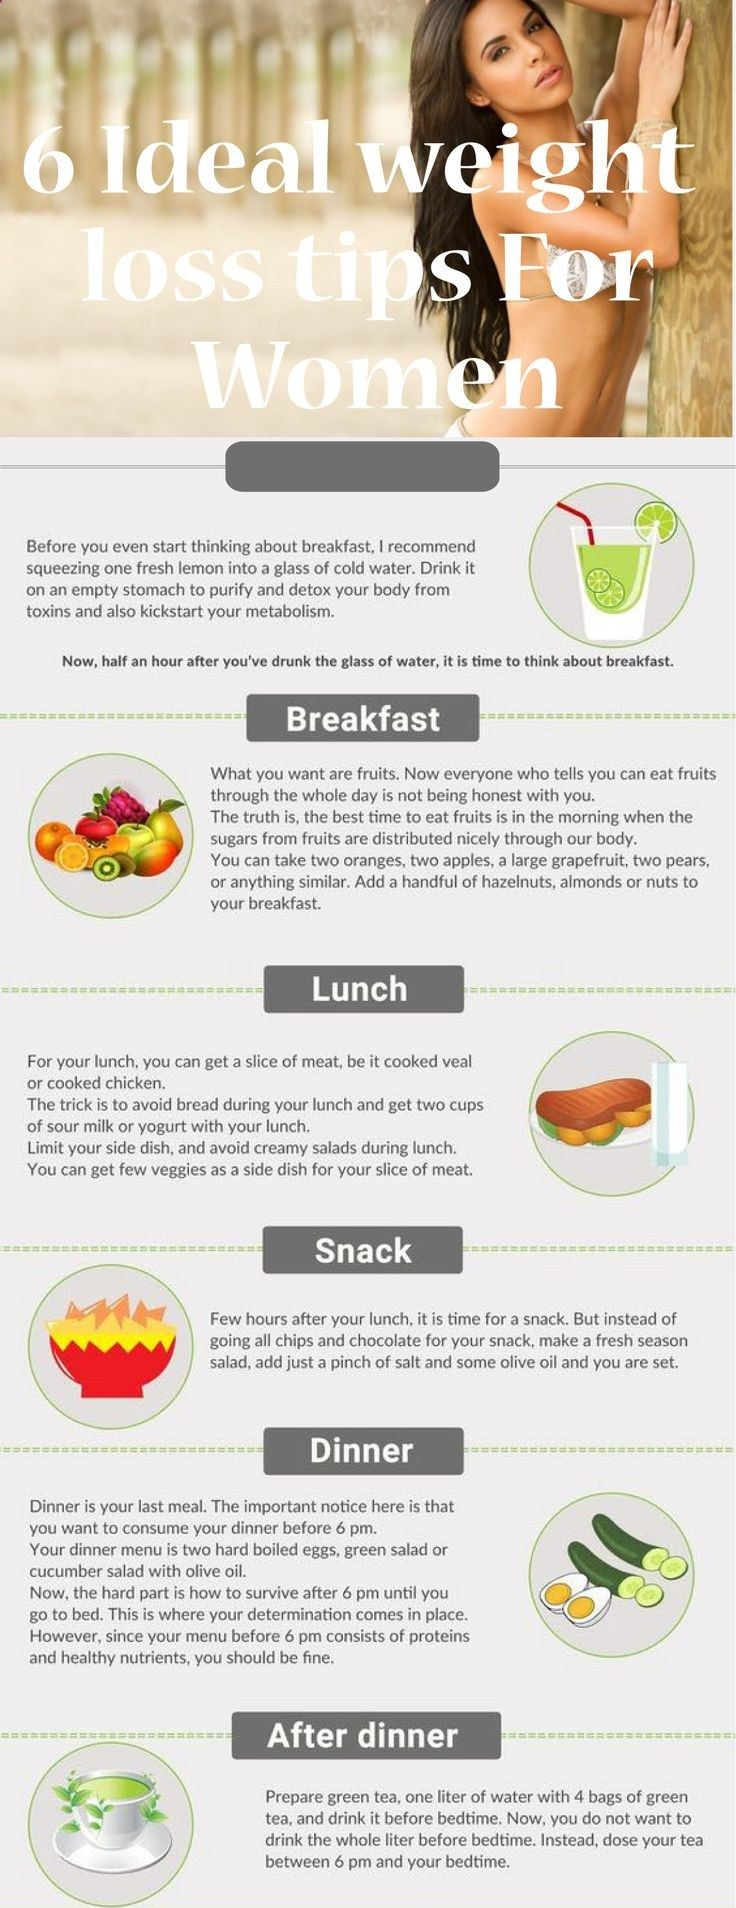 how to lose 15 kilos in 2 months diet plan